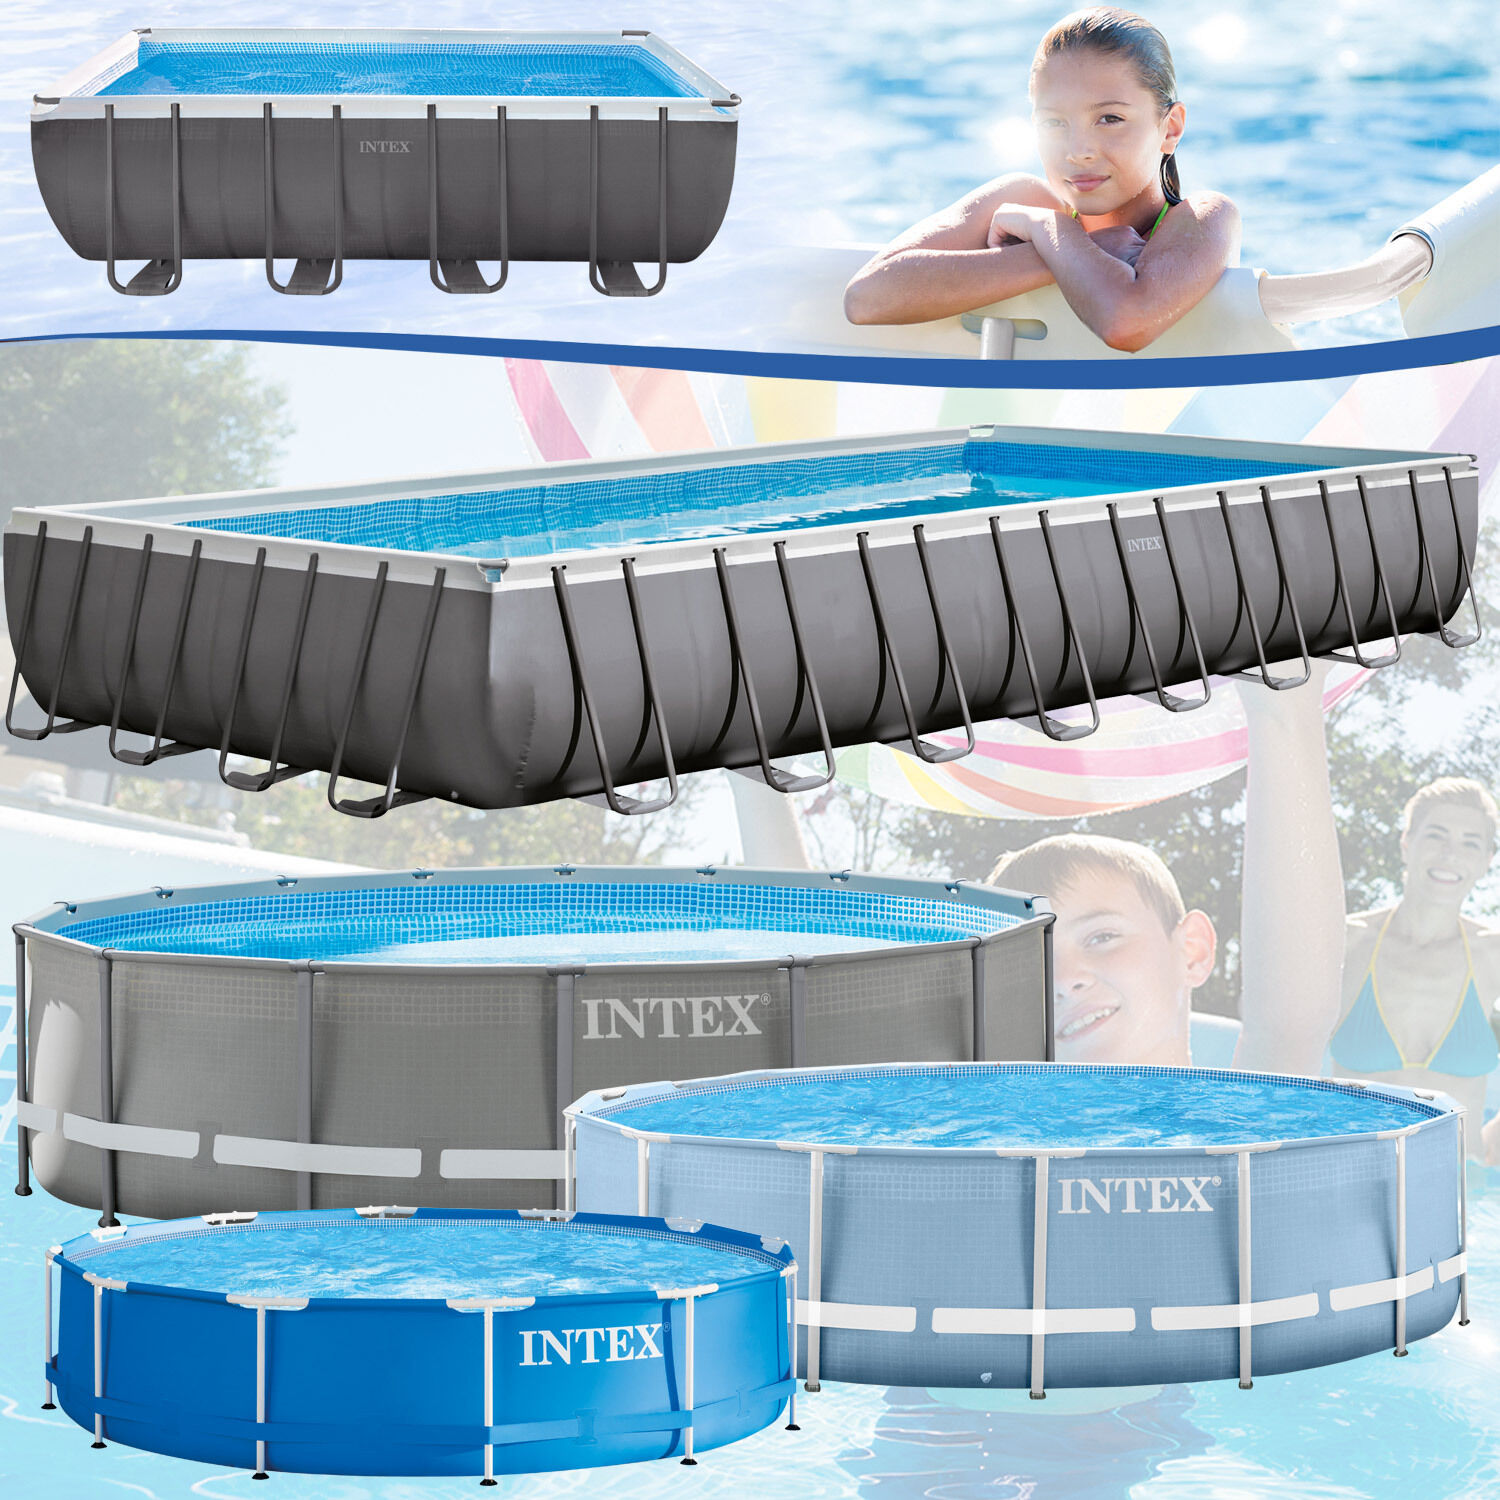 intex pool rund test vergleich intex pool rund g nstig kaufen. Black Bedroom Furniture Sets. Home Design Ideas